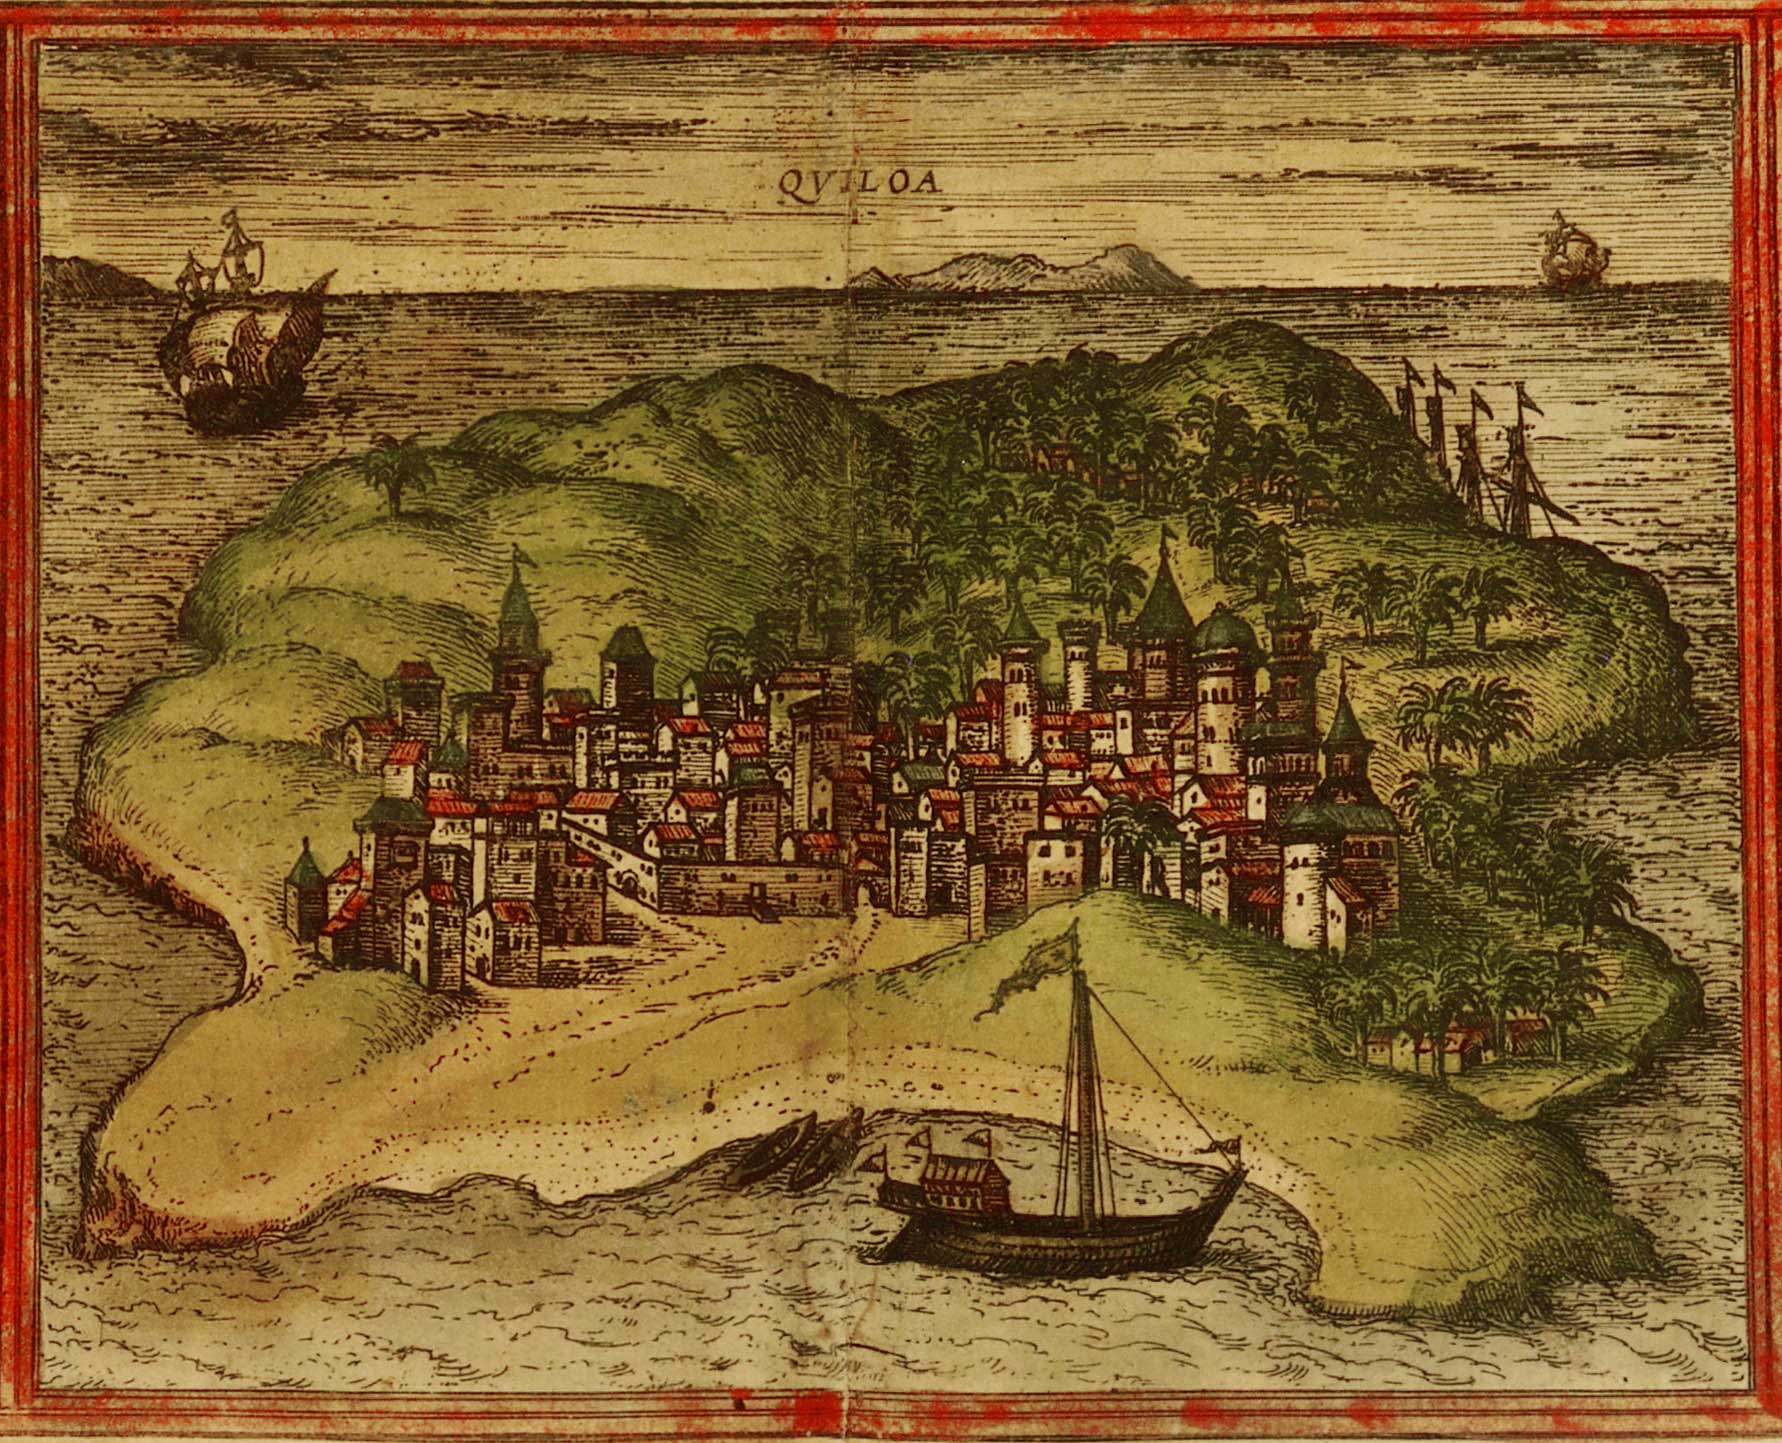 Illustration shows an island with a collection of buildings in the center